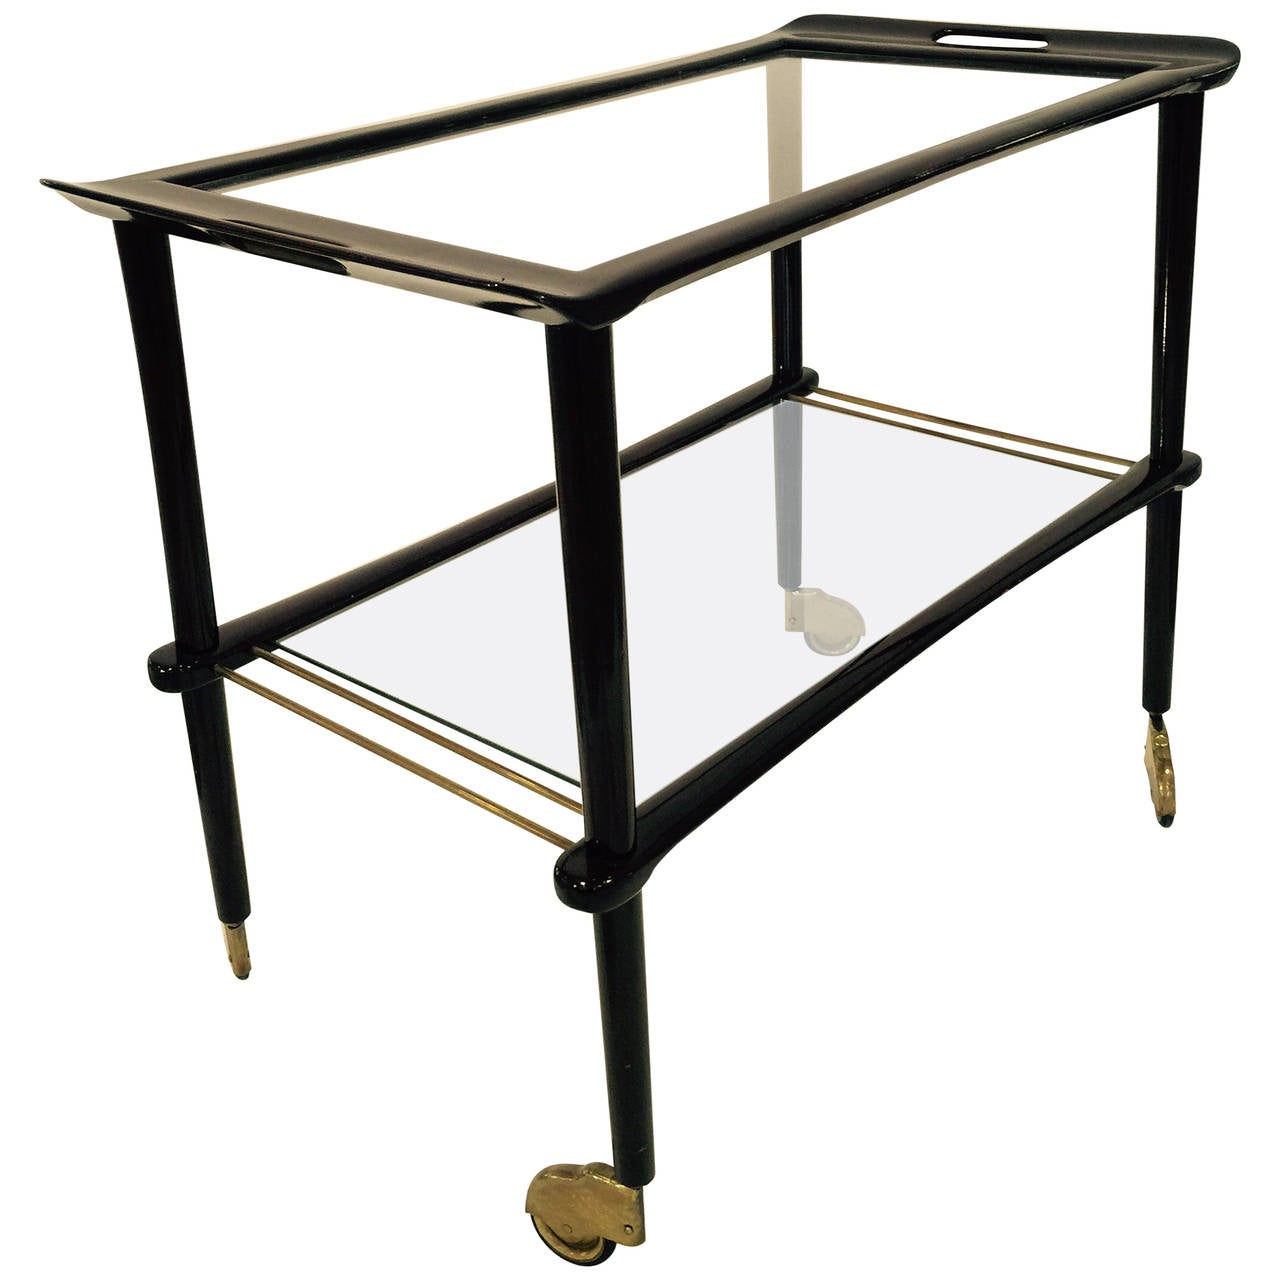 Italian Lacquered Wood and Glass Bar Cart